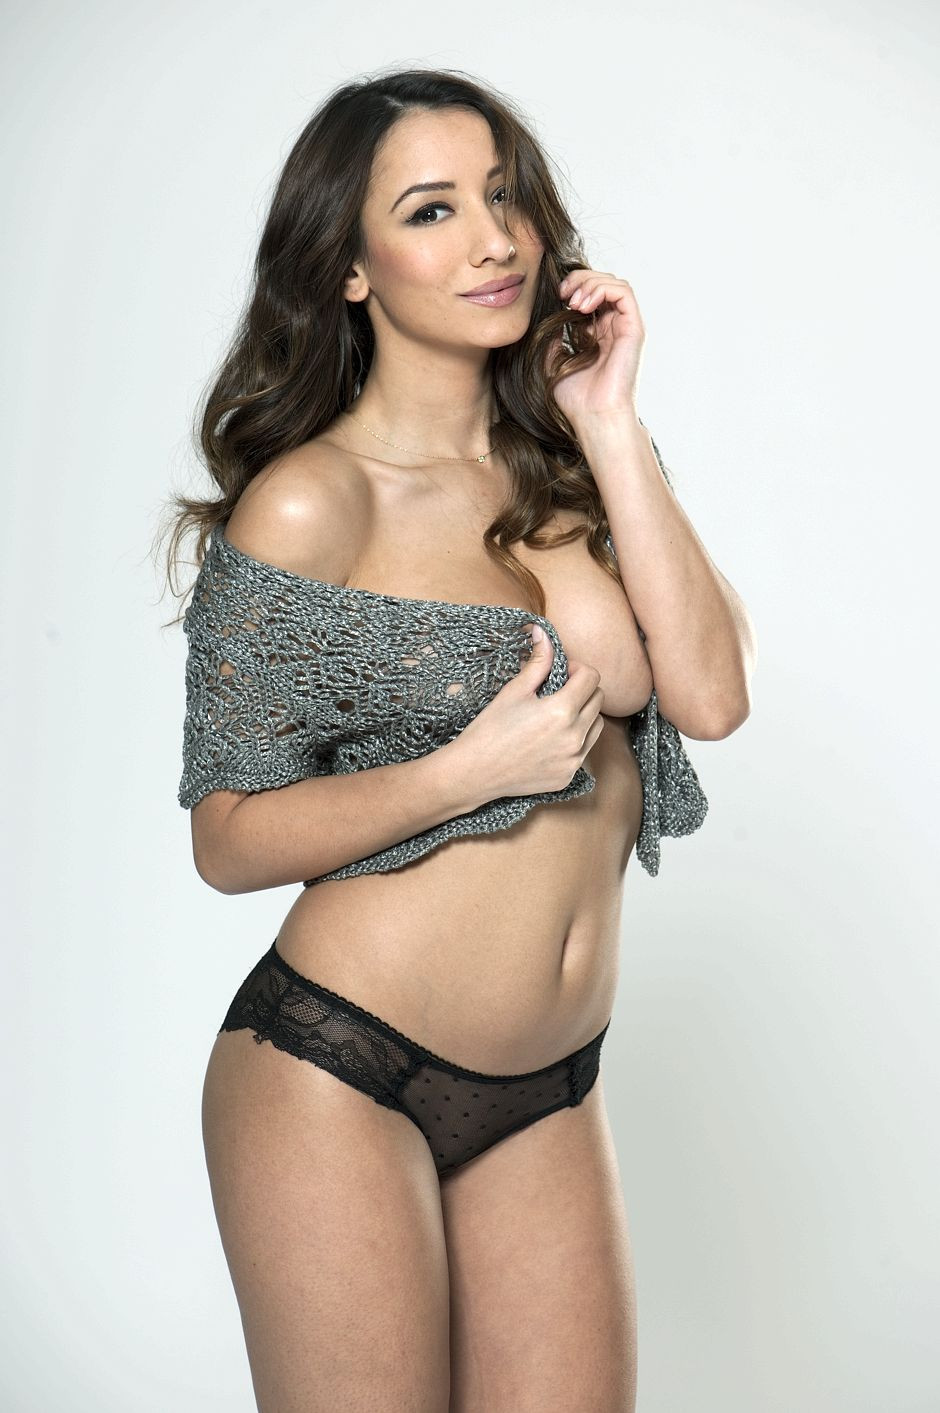 Nicola Paul Topless 8 TheFappening.nu